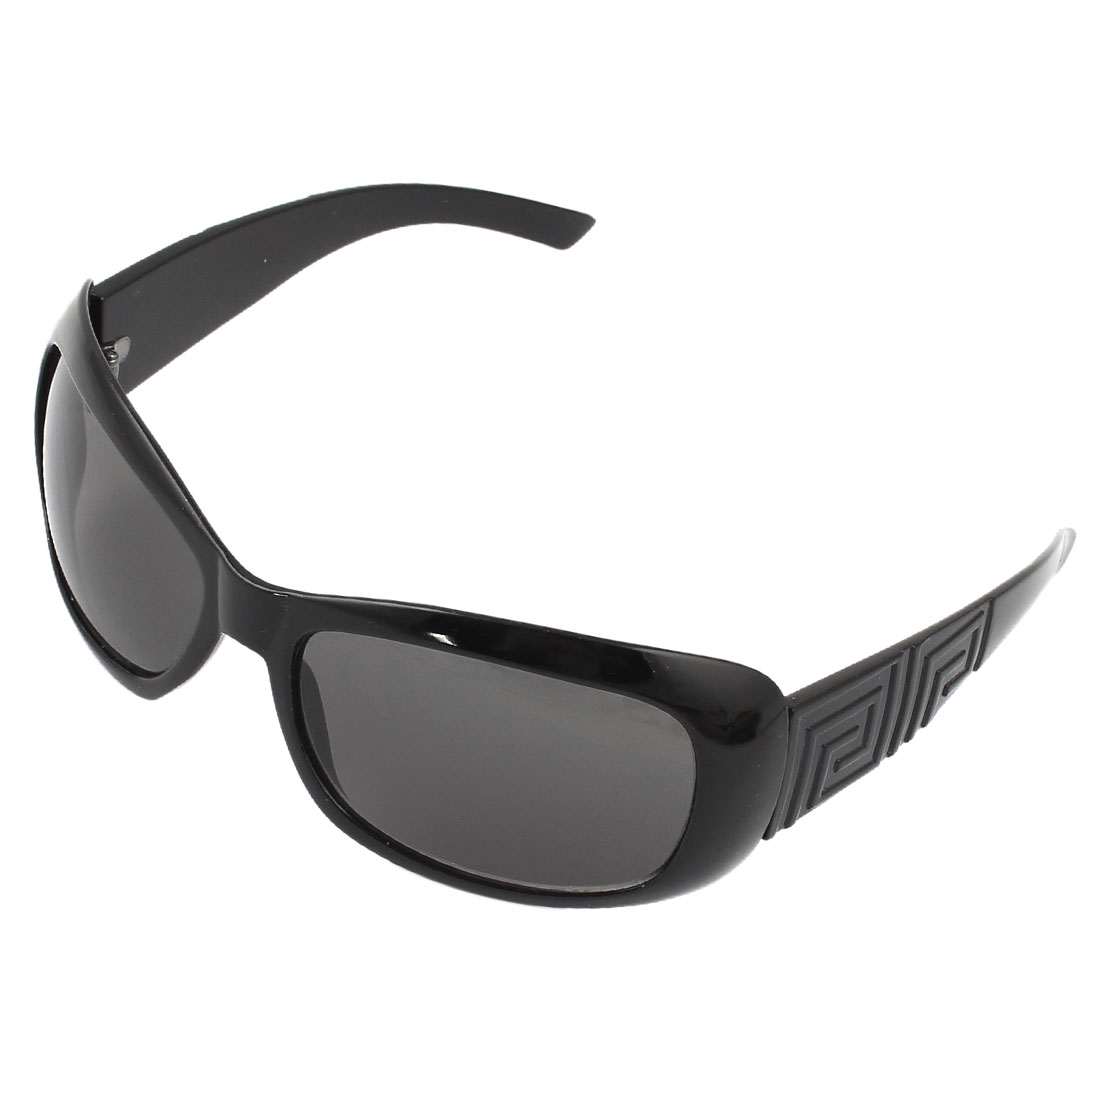 Unisex Black Plastic Full Rim Square Lens Sunglasses Eyewear